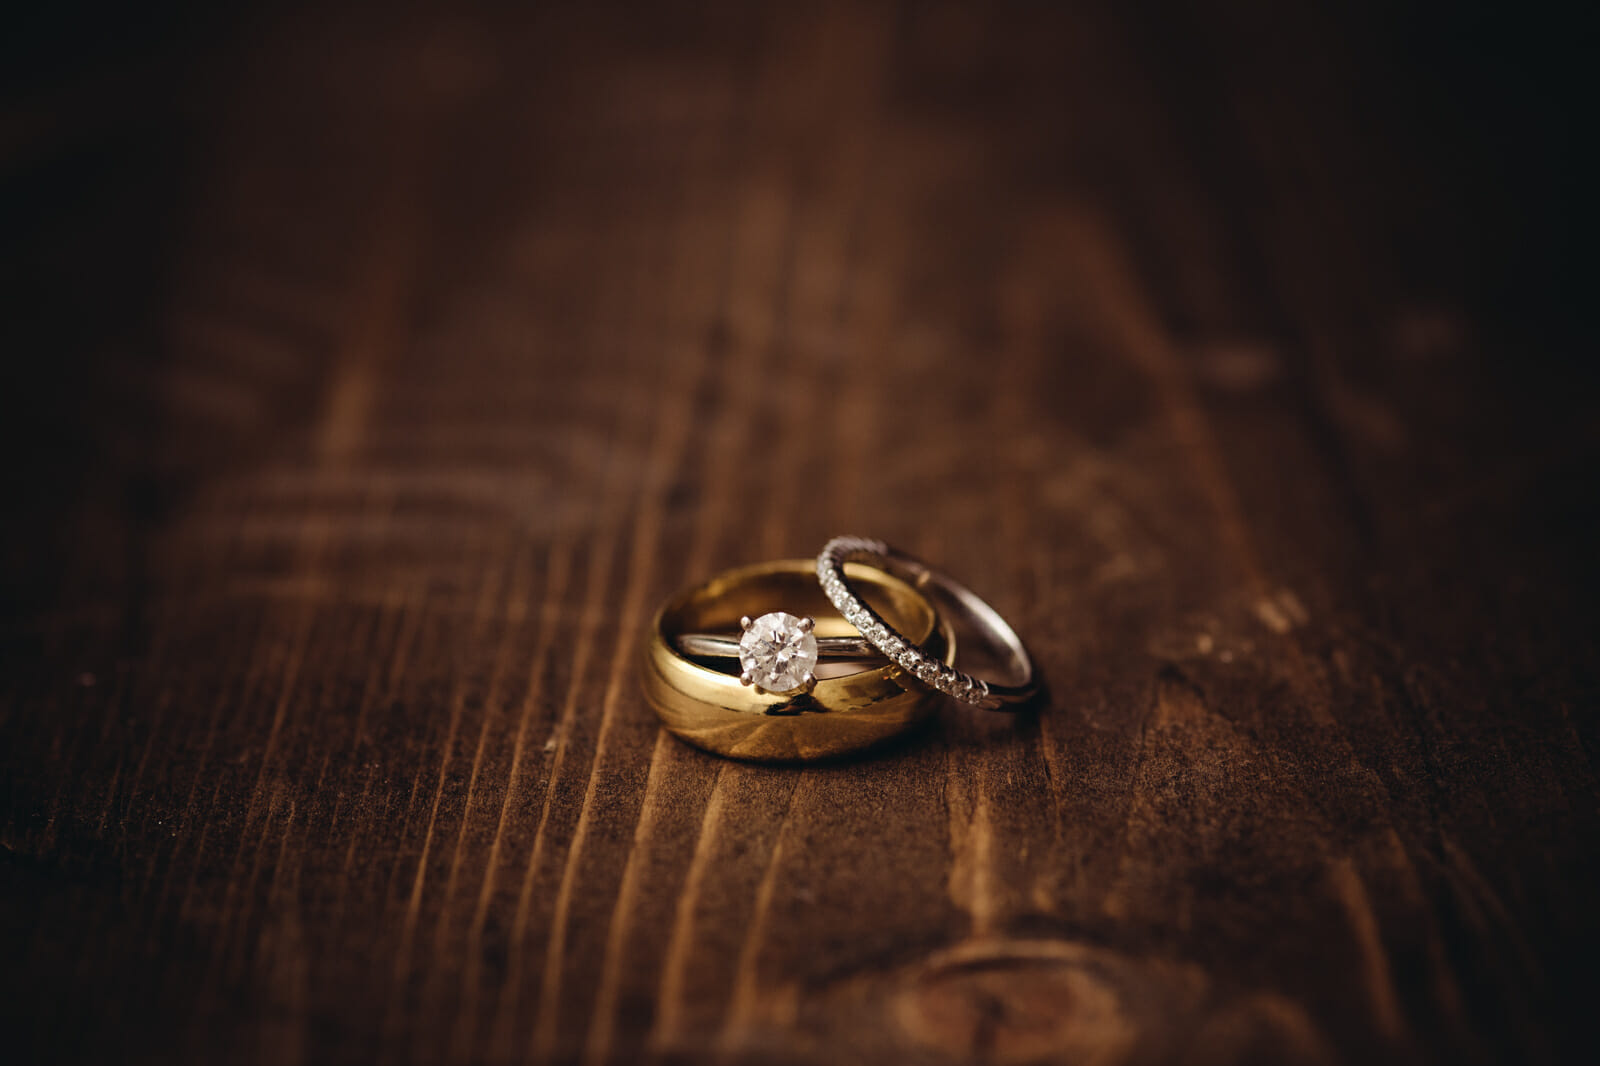 macro shot of couples wedding rings